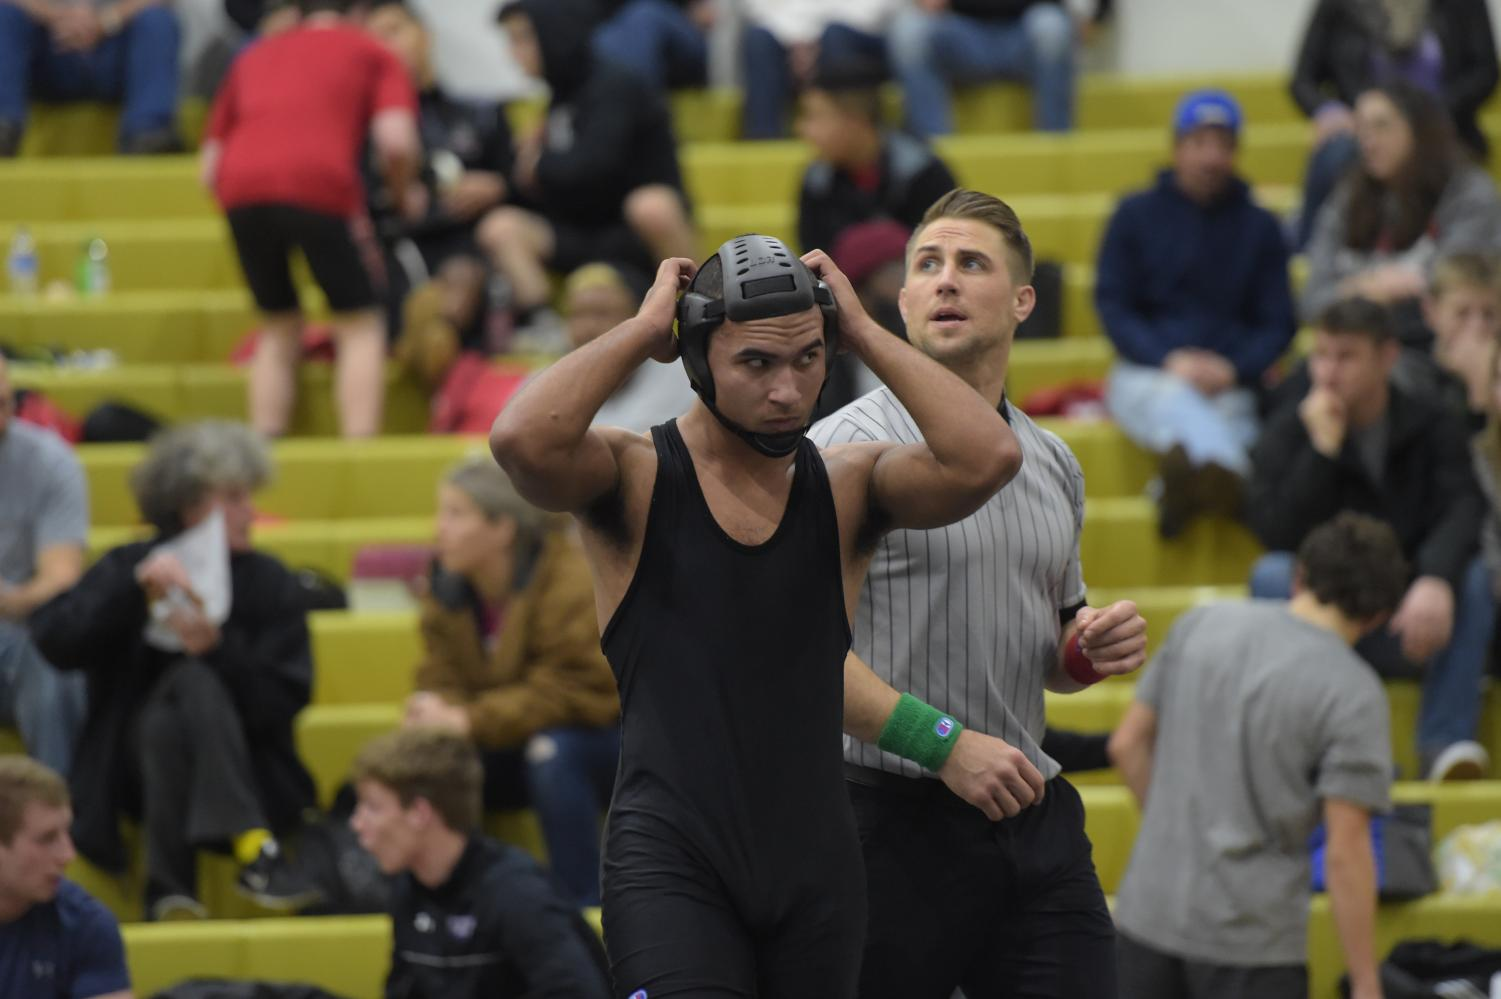 Ft Zumwalt Wrestling Tournament - photos by Terry Bowen